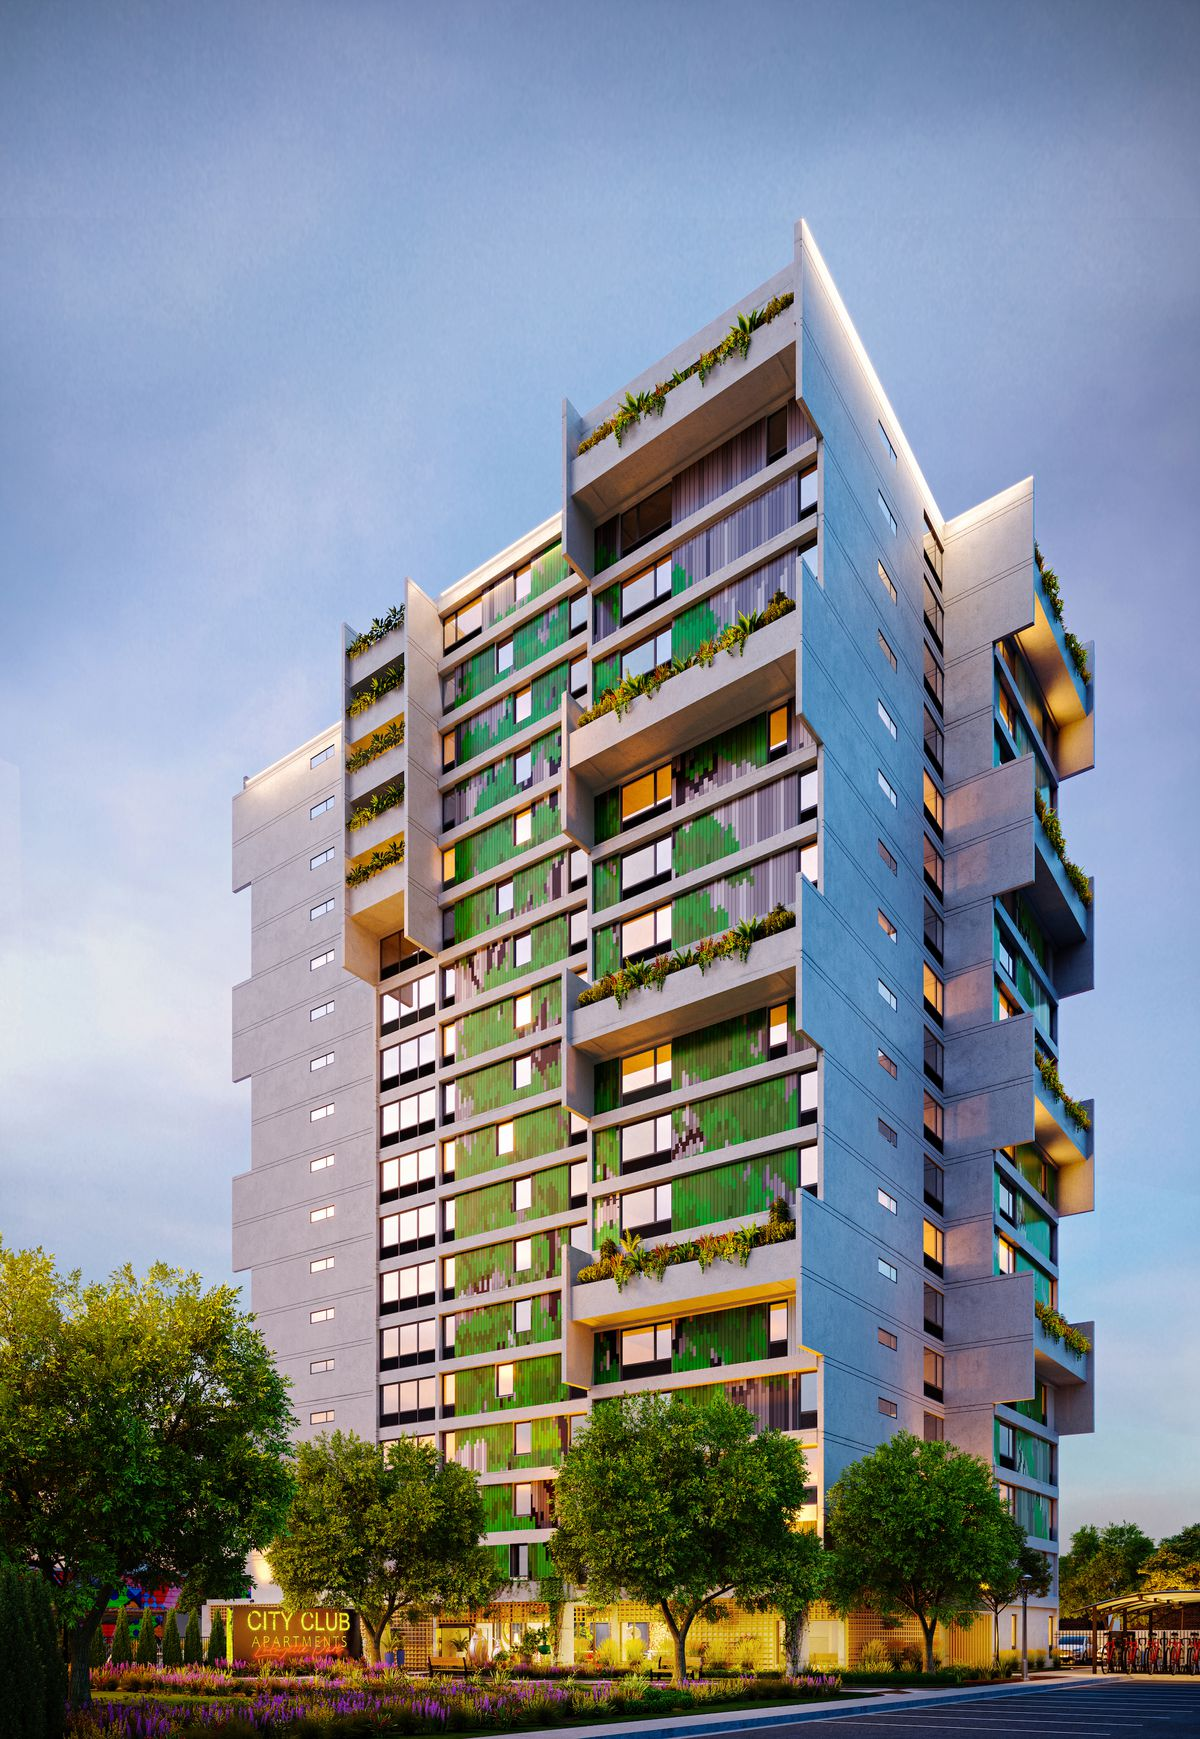 Rendering of a high-rise with varied facade containing green panels and some plants.